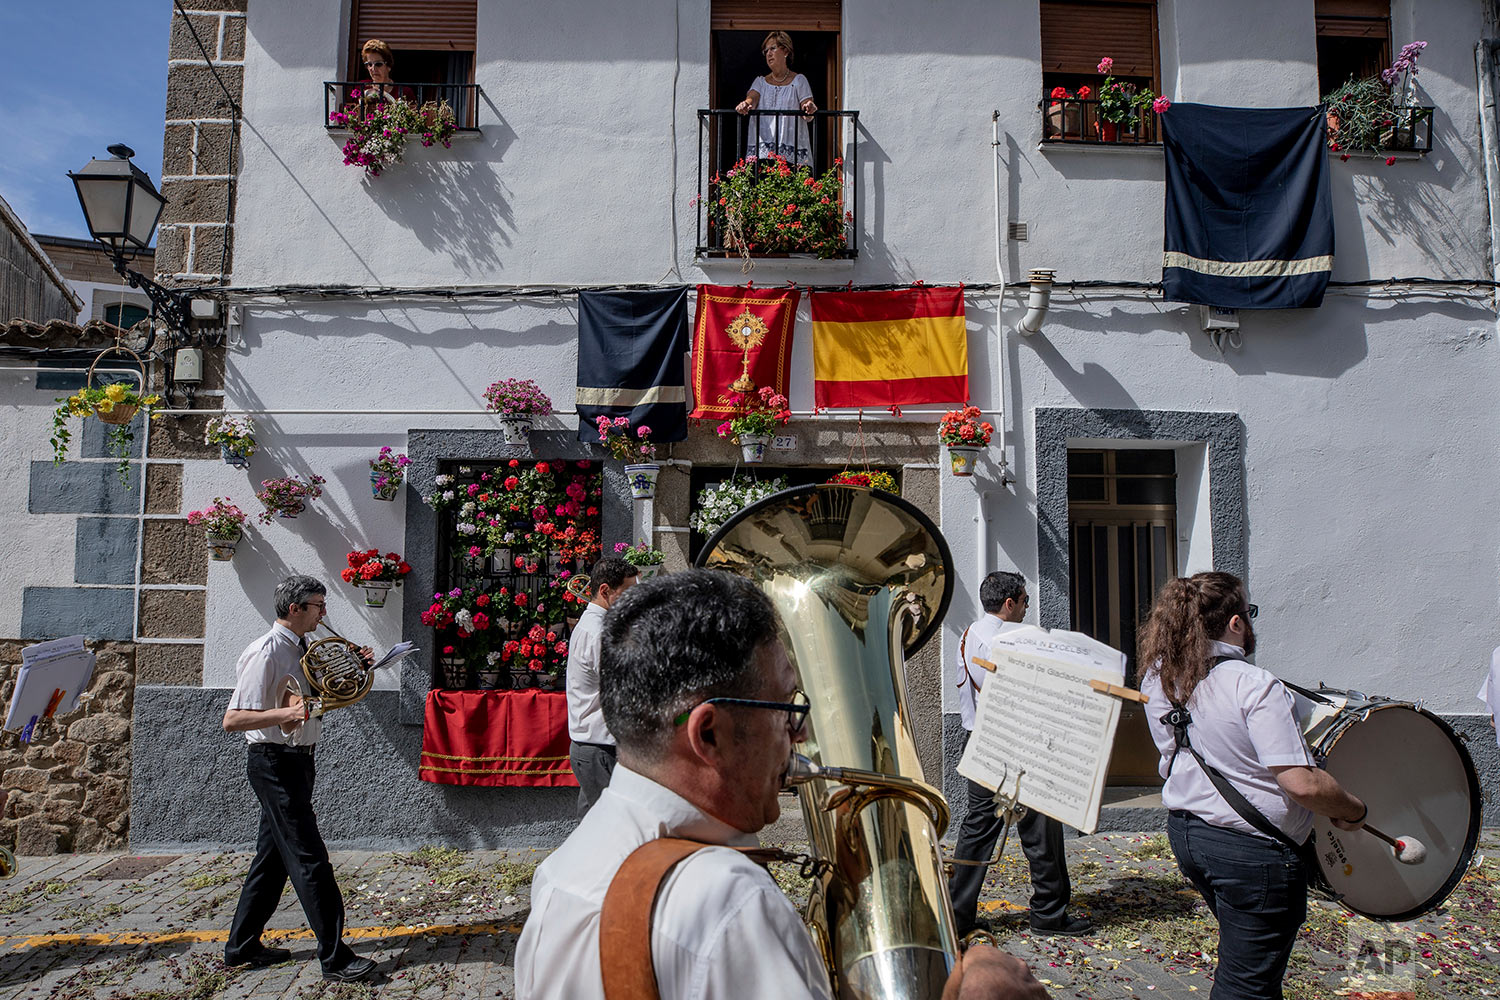 A music band takes part during the Corpus Christi procession in the village of Bejar, Spain, Sunday, June 23, 2019.  (AP Photo/Bernat Armangue)